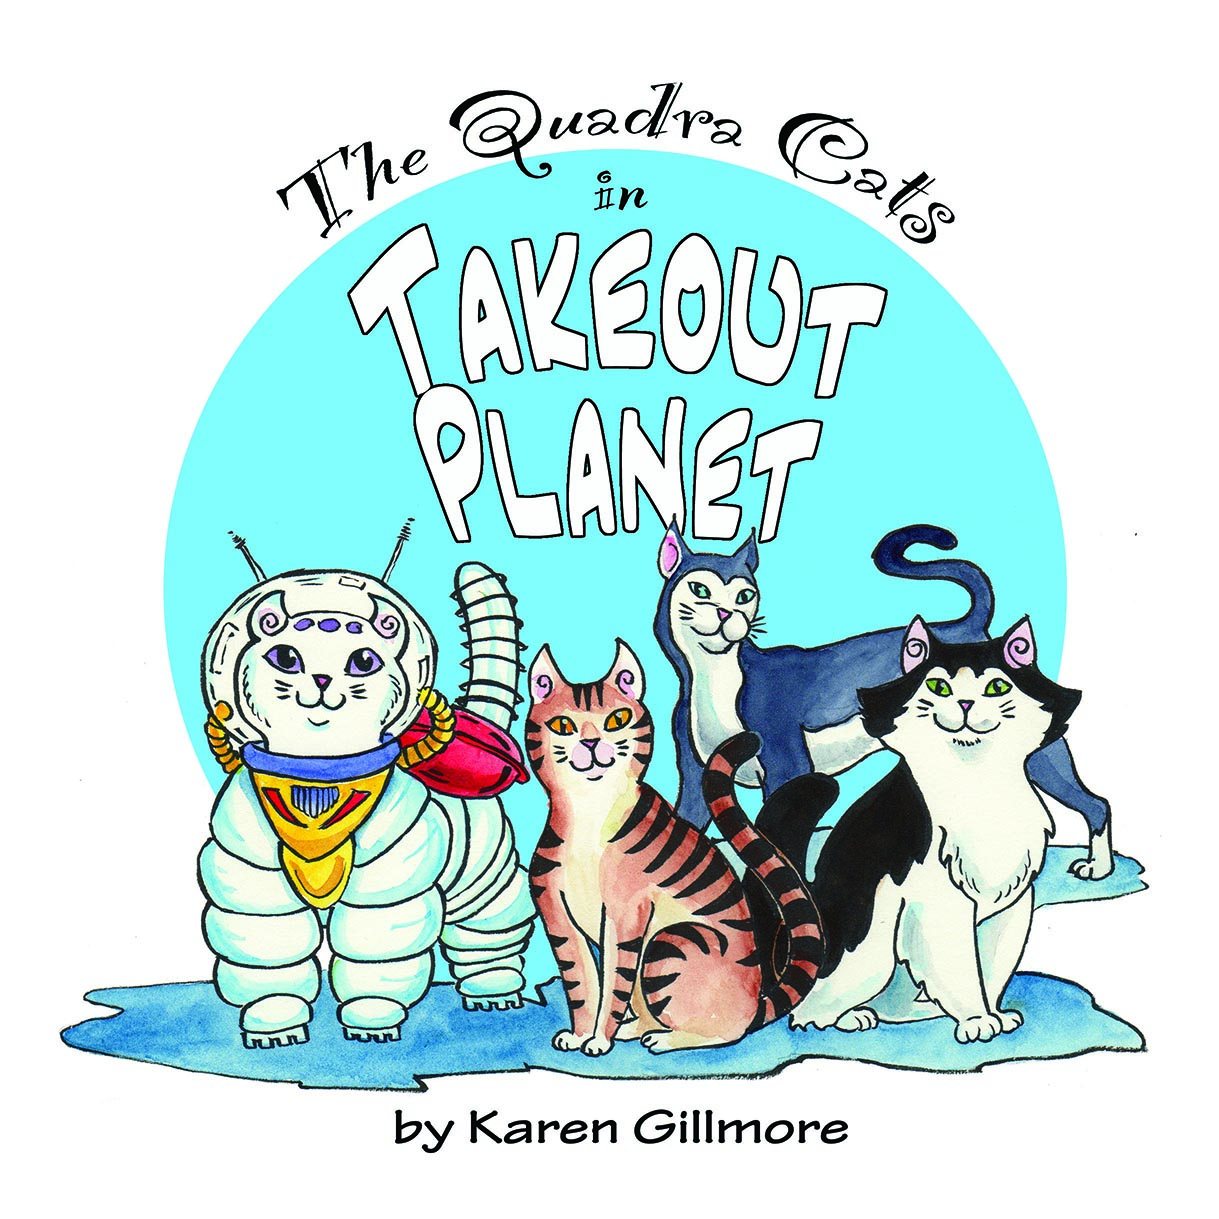 The cover of Takeout Planet, the first book in the Quadra Cats series